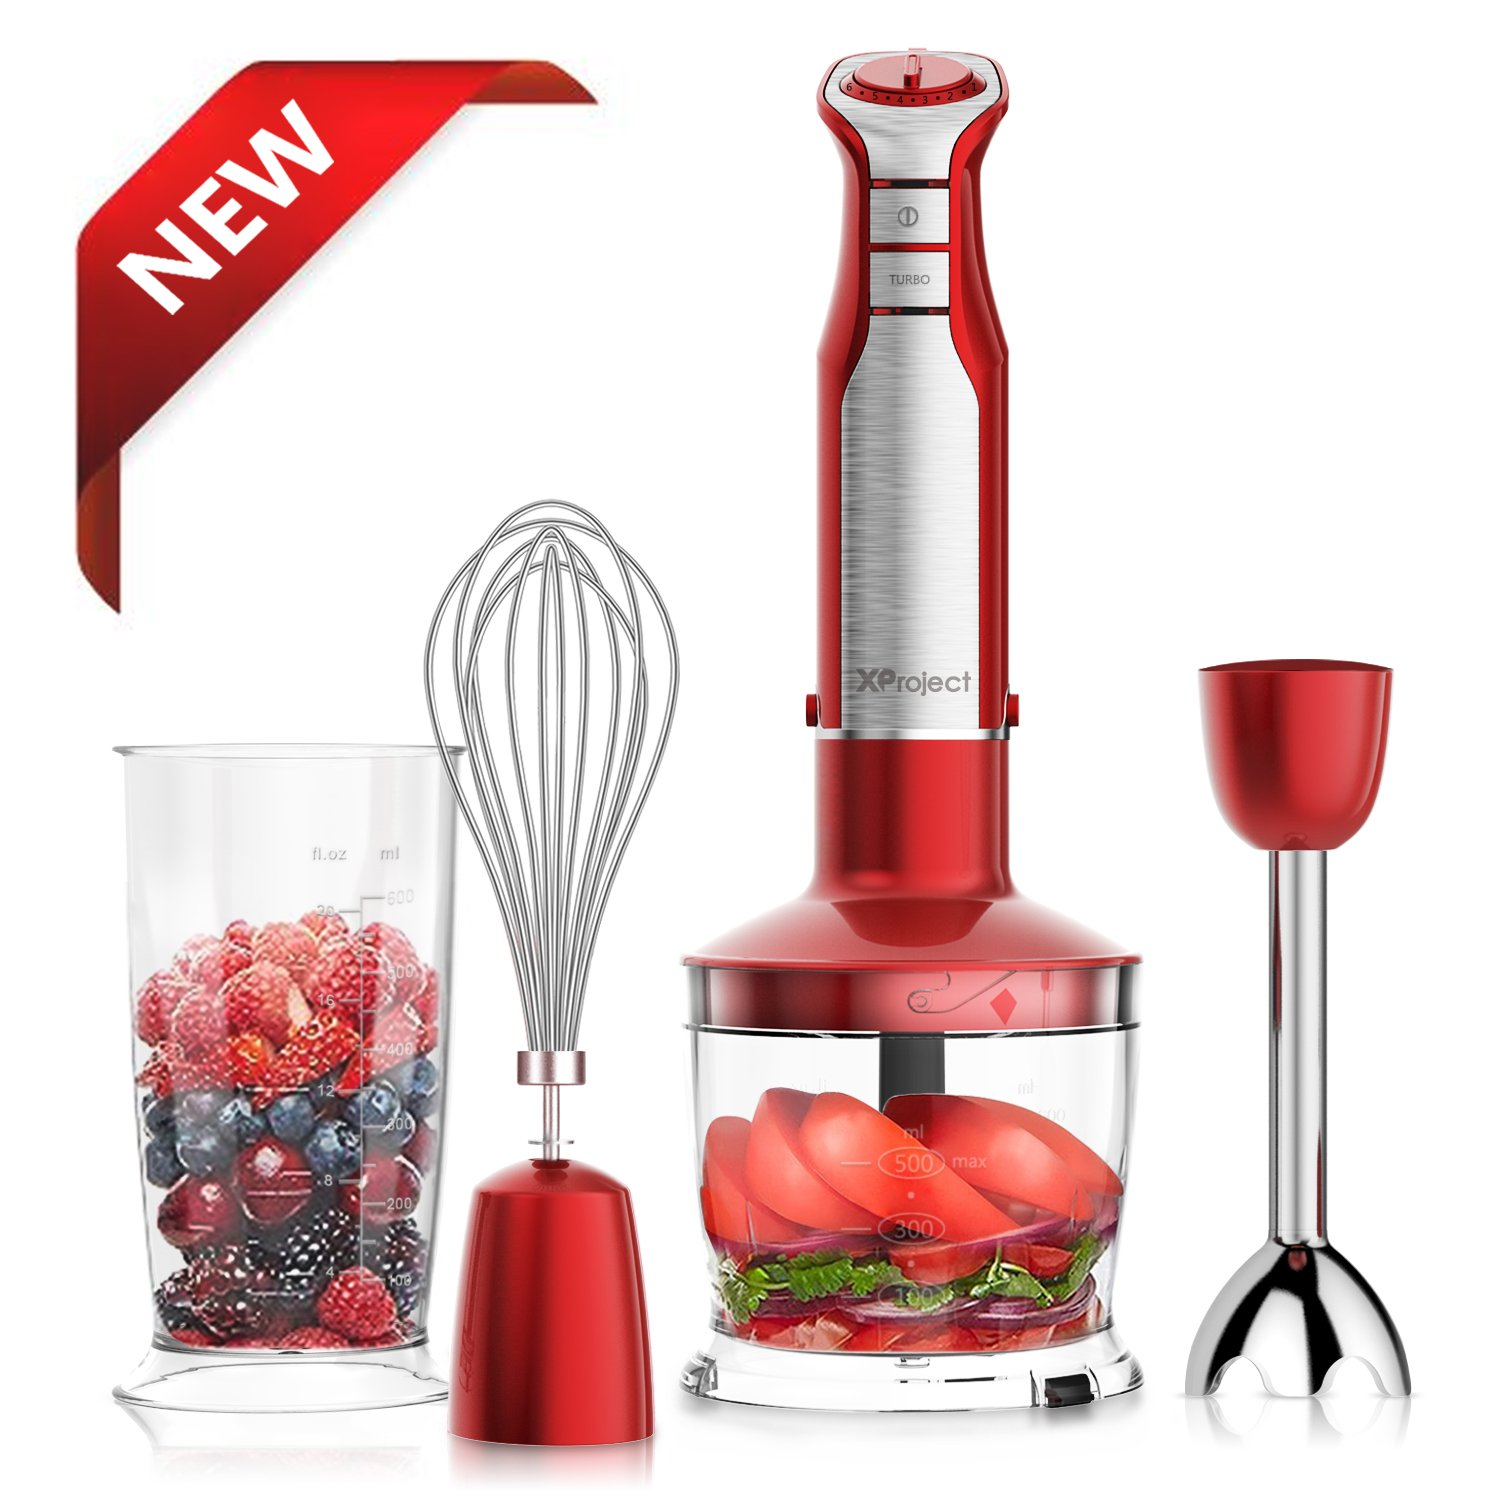 XProject 800W 4-in-1 Hand Blender with 6 Speed,Powerful Immersion Hand Blender for Smoothies Baby Food Yogurt Sauces Soups (Red) by XProject (Image #1)